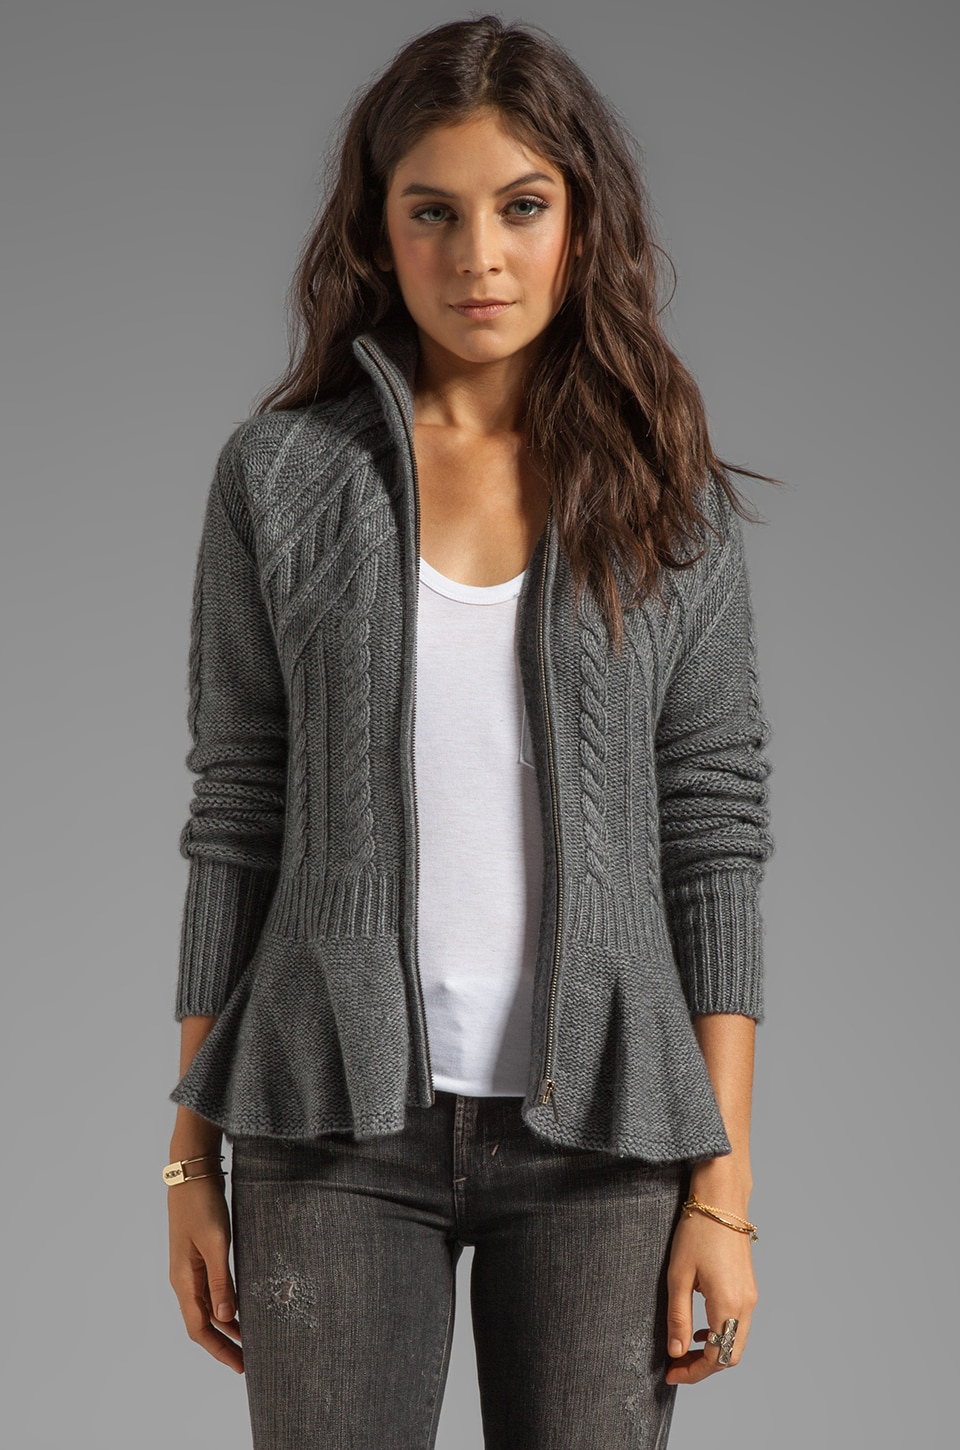 Autumn Cashmere Peplum Jacket in Flannel